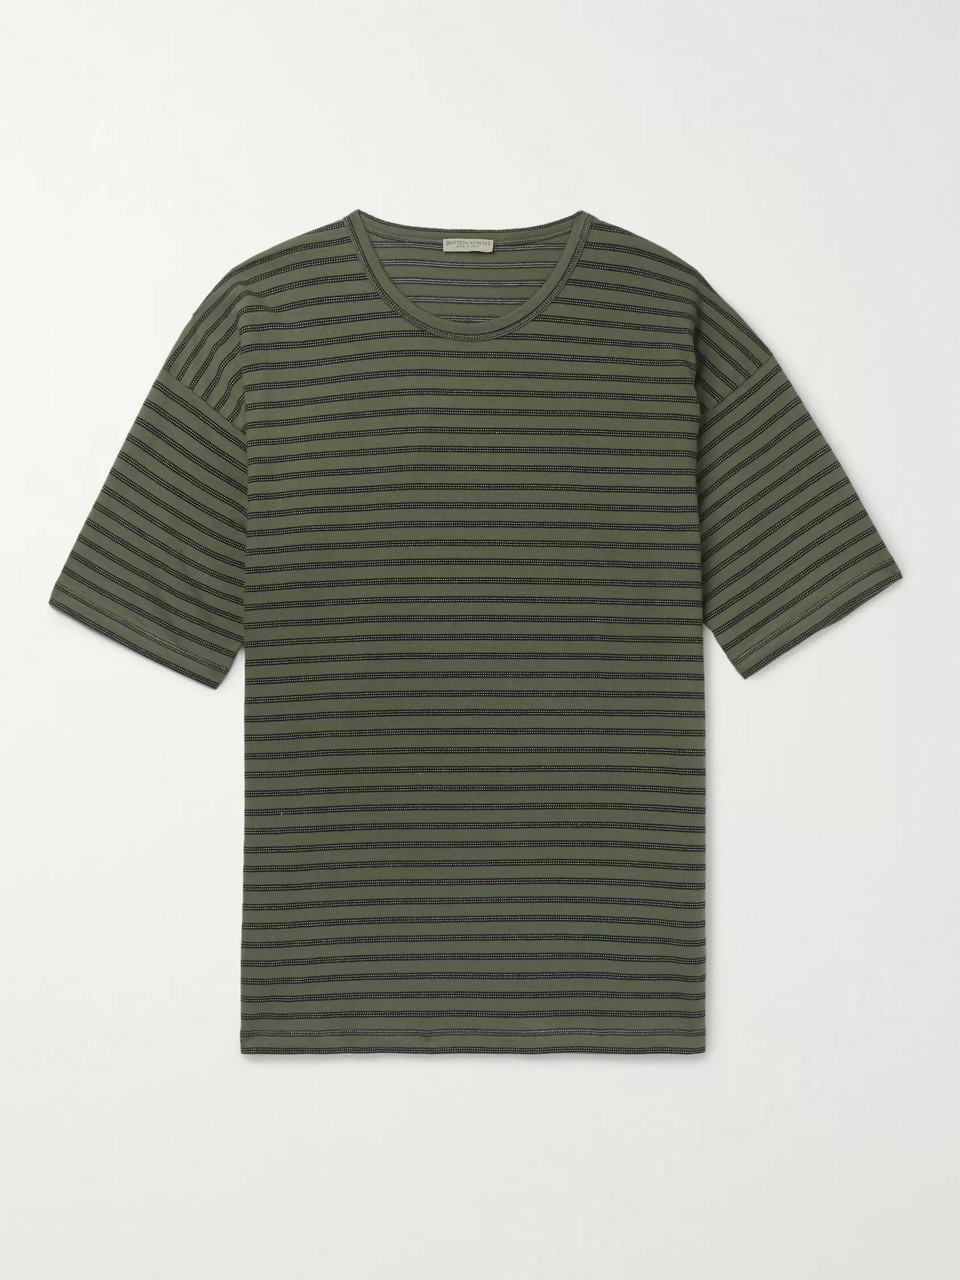 Bottega Veneta Striped Cotton-Jersey T-Shirt